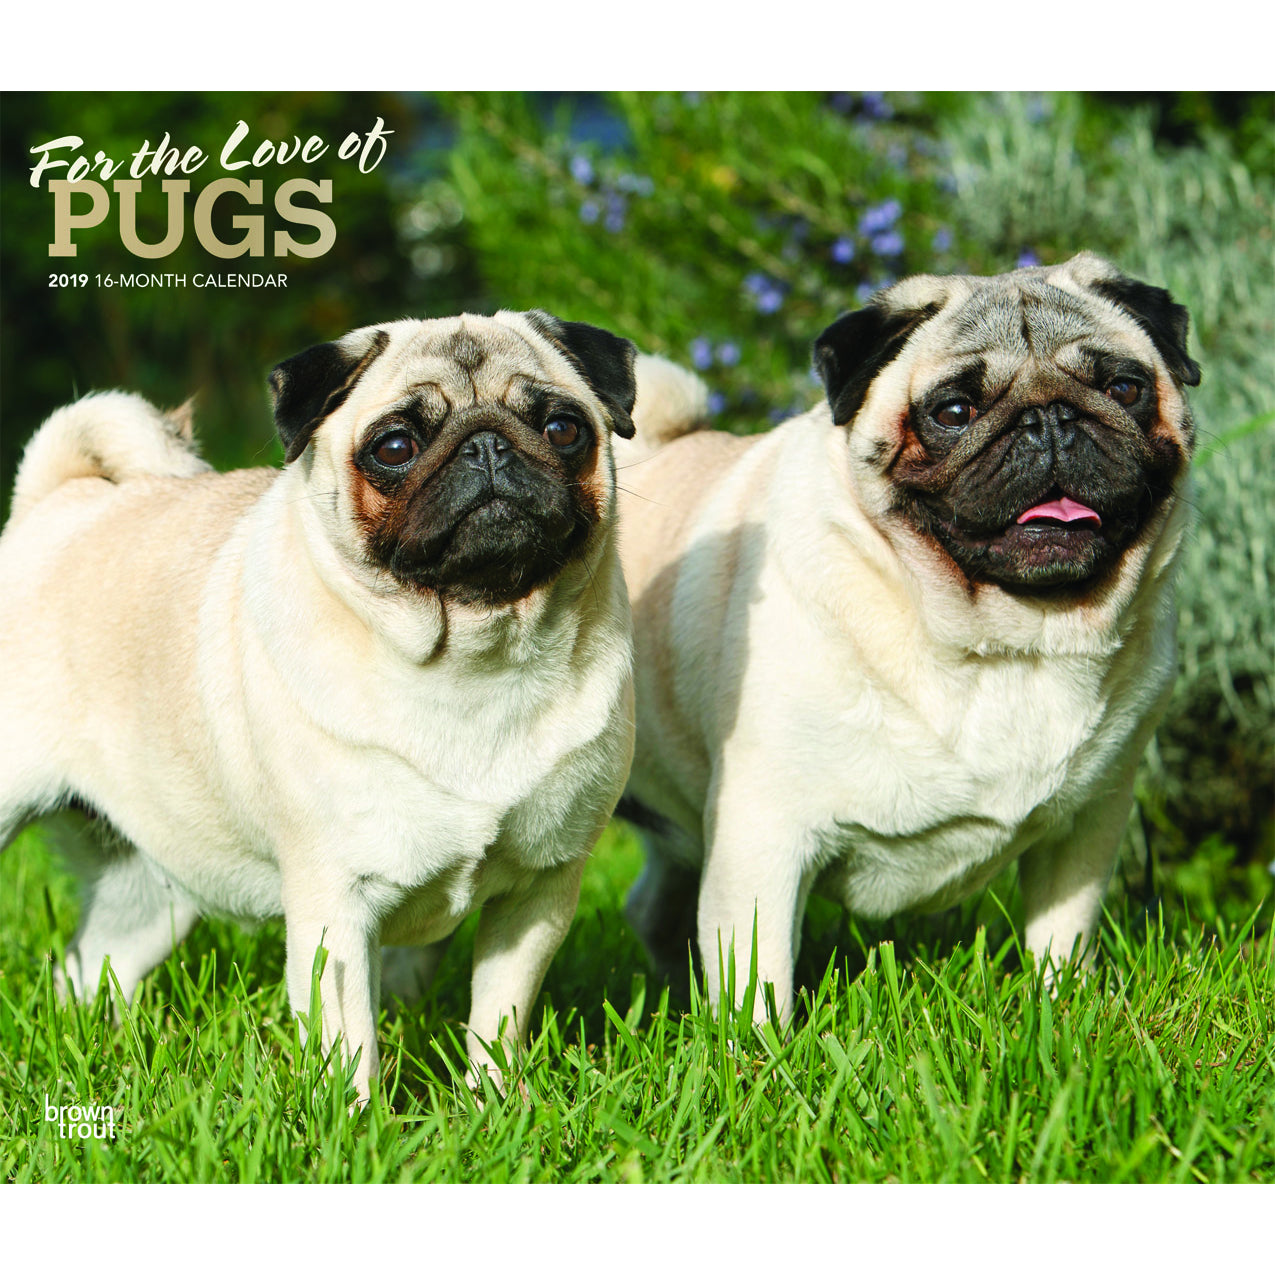 For The Love Of Pugs 2019 Deluxe Wall Calendar